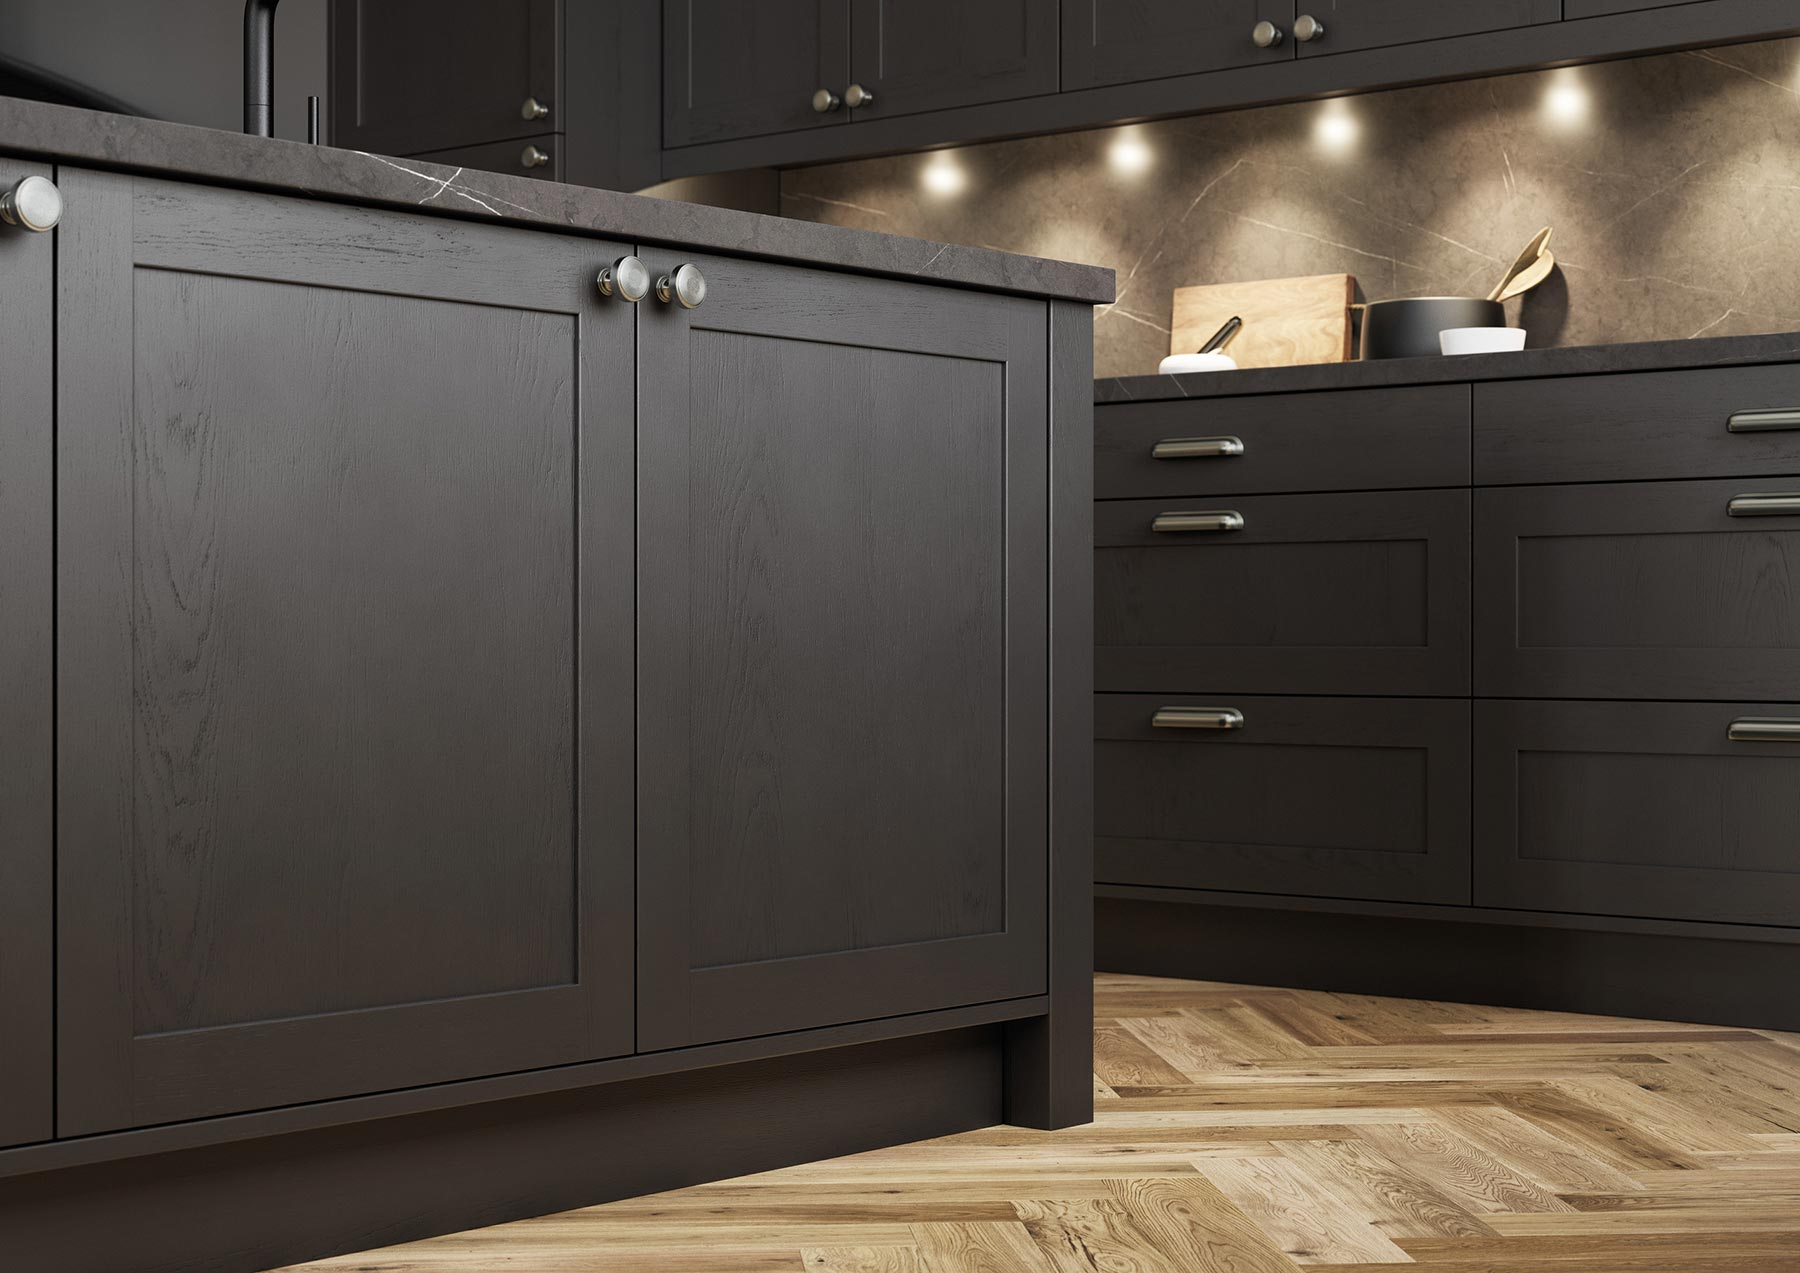 Contemporary Skinny Shaker Kitchen Painted Graphite Grey Close Up